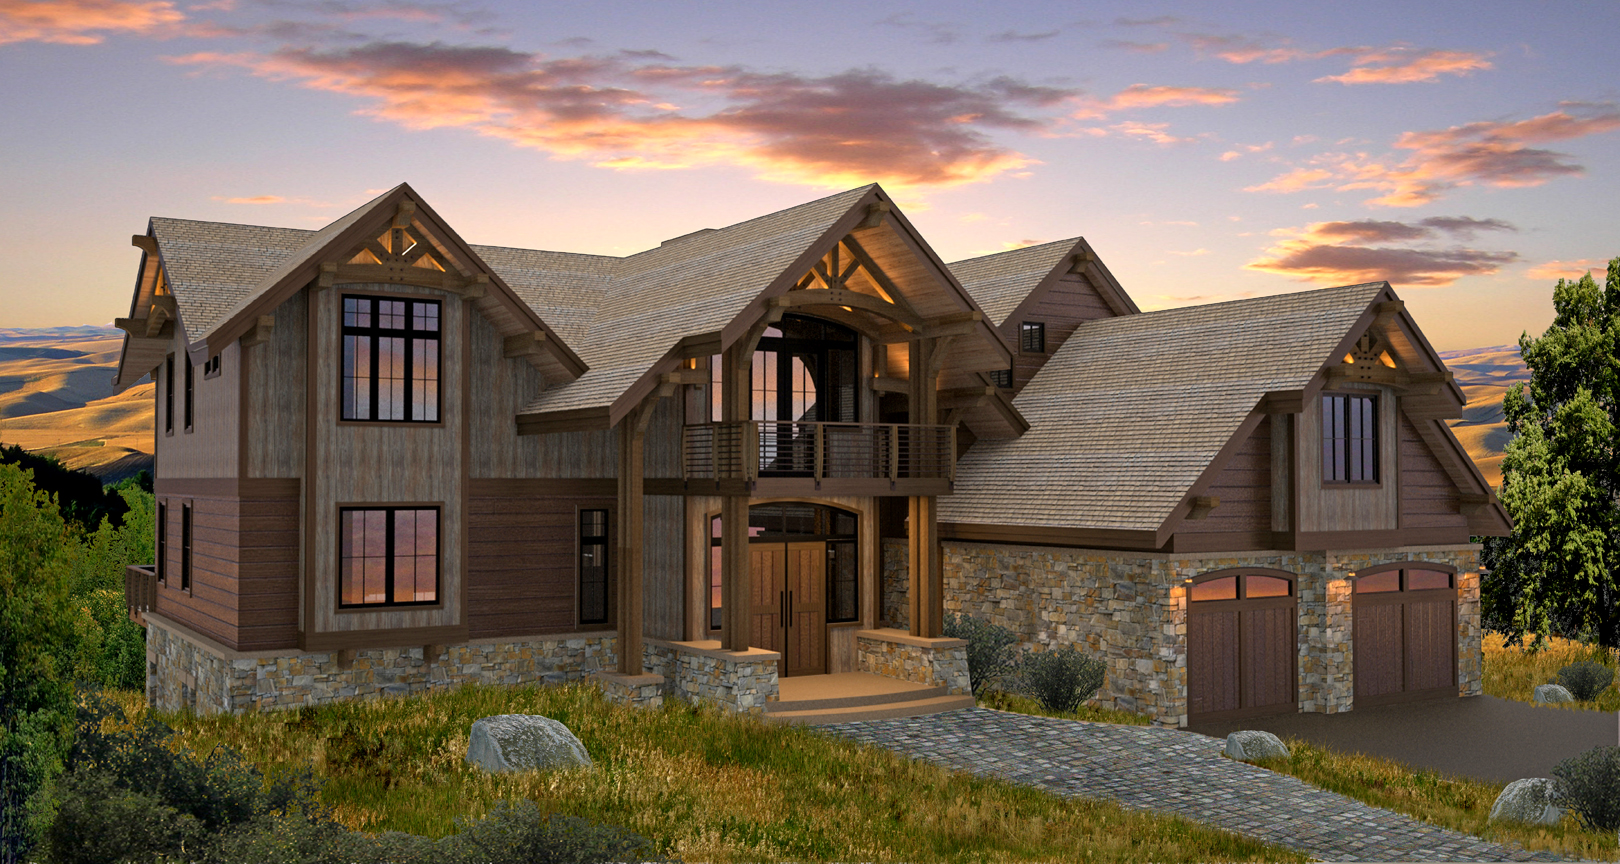 Our House Designs And Floor Plans